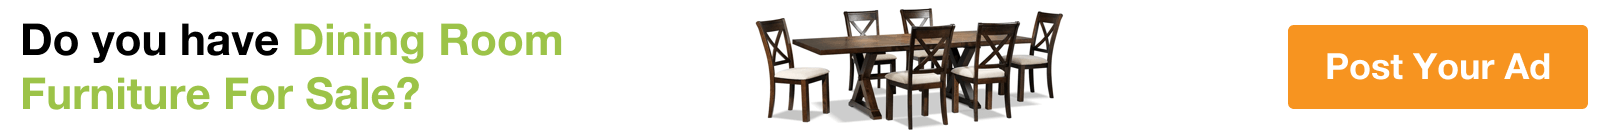 Dining Room Furniture for Sale in UAE